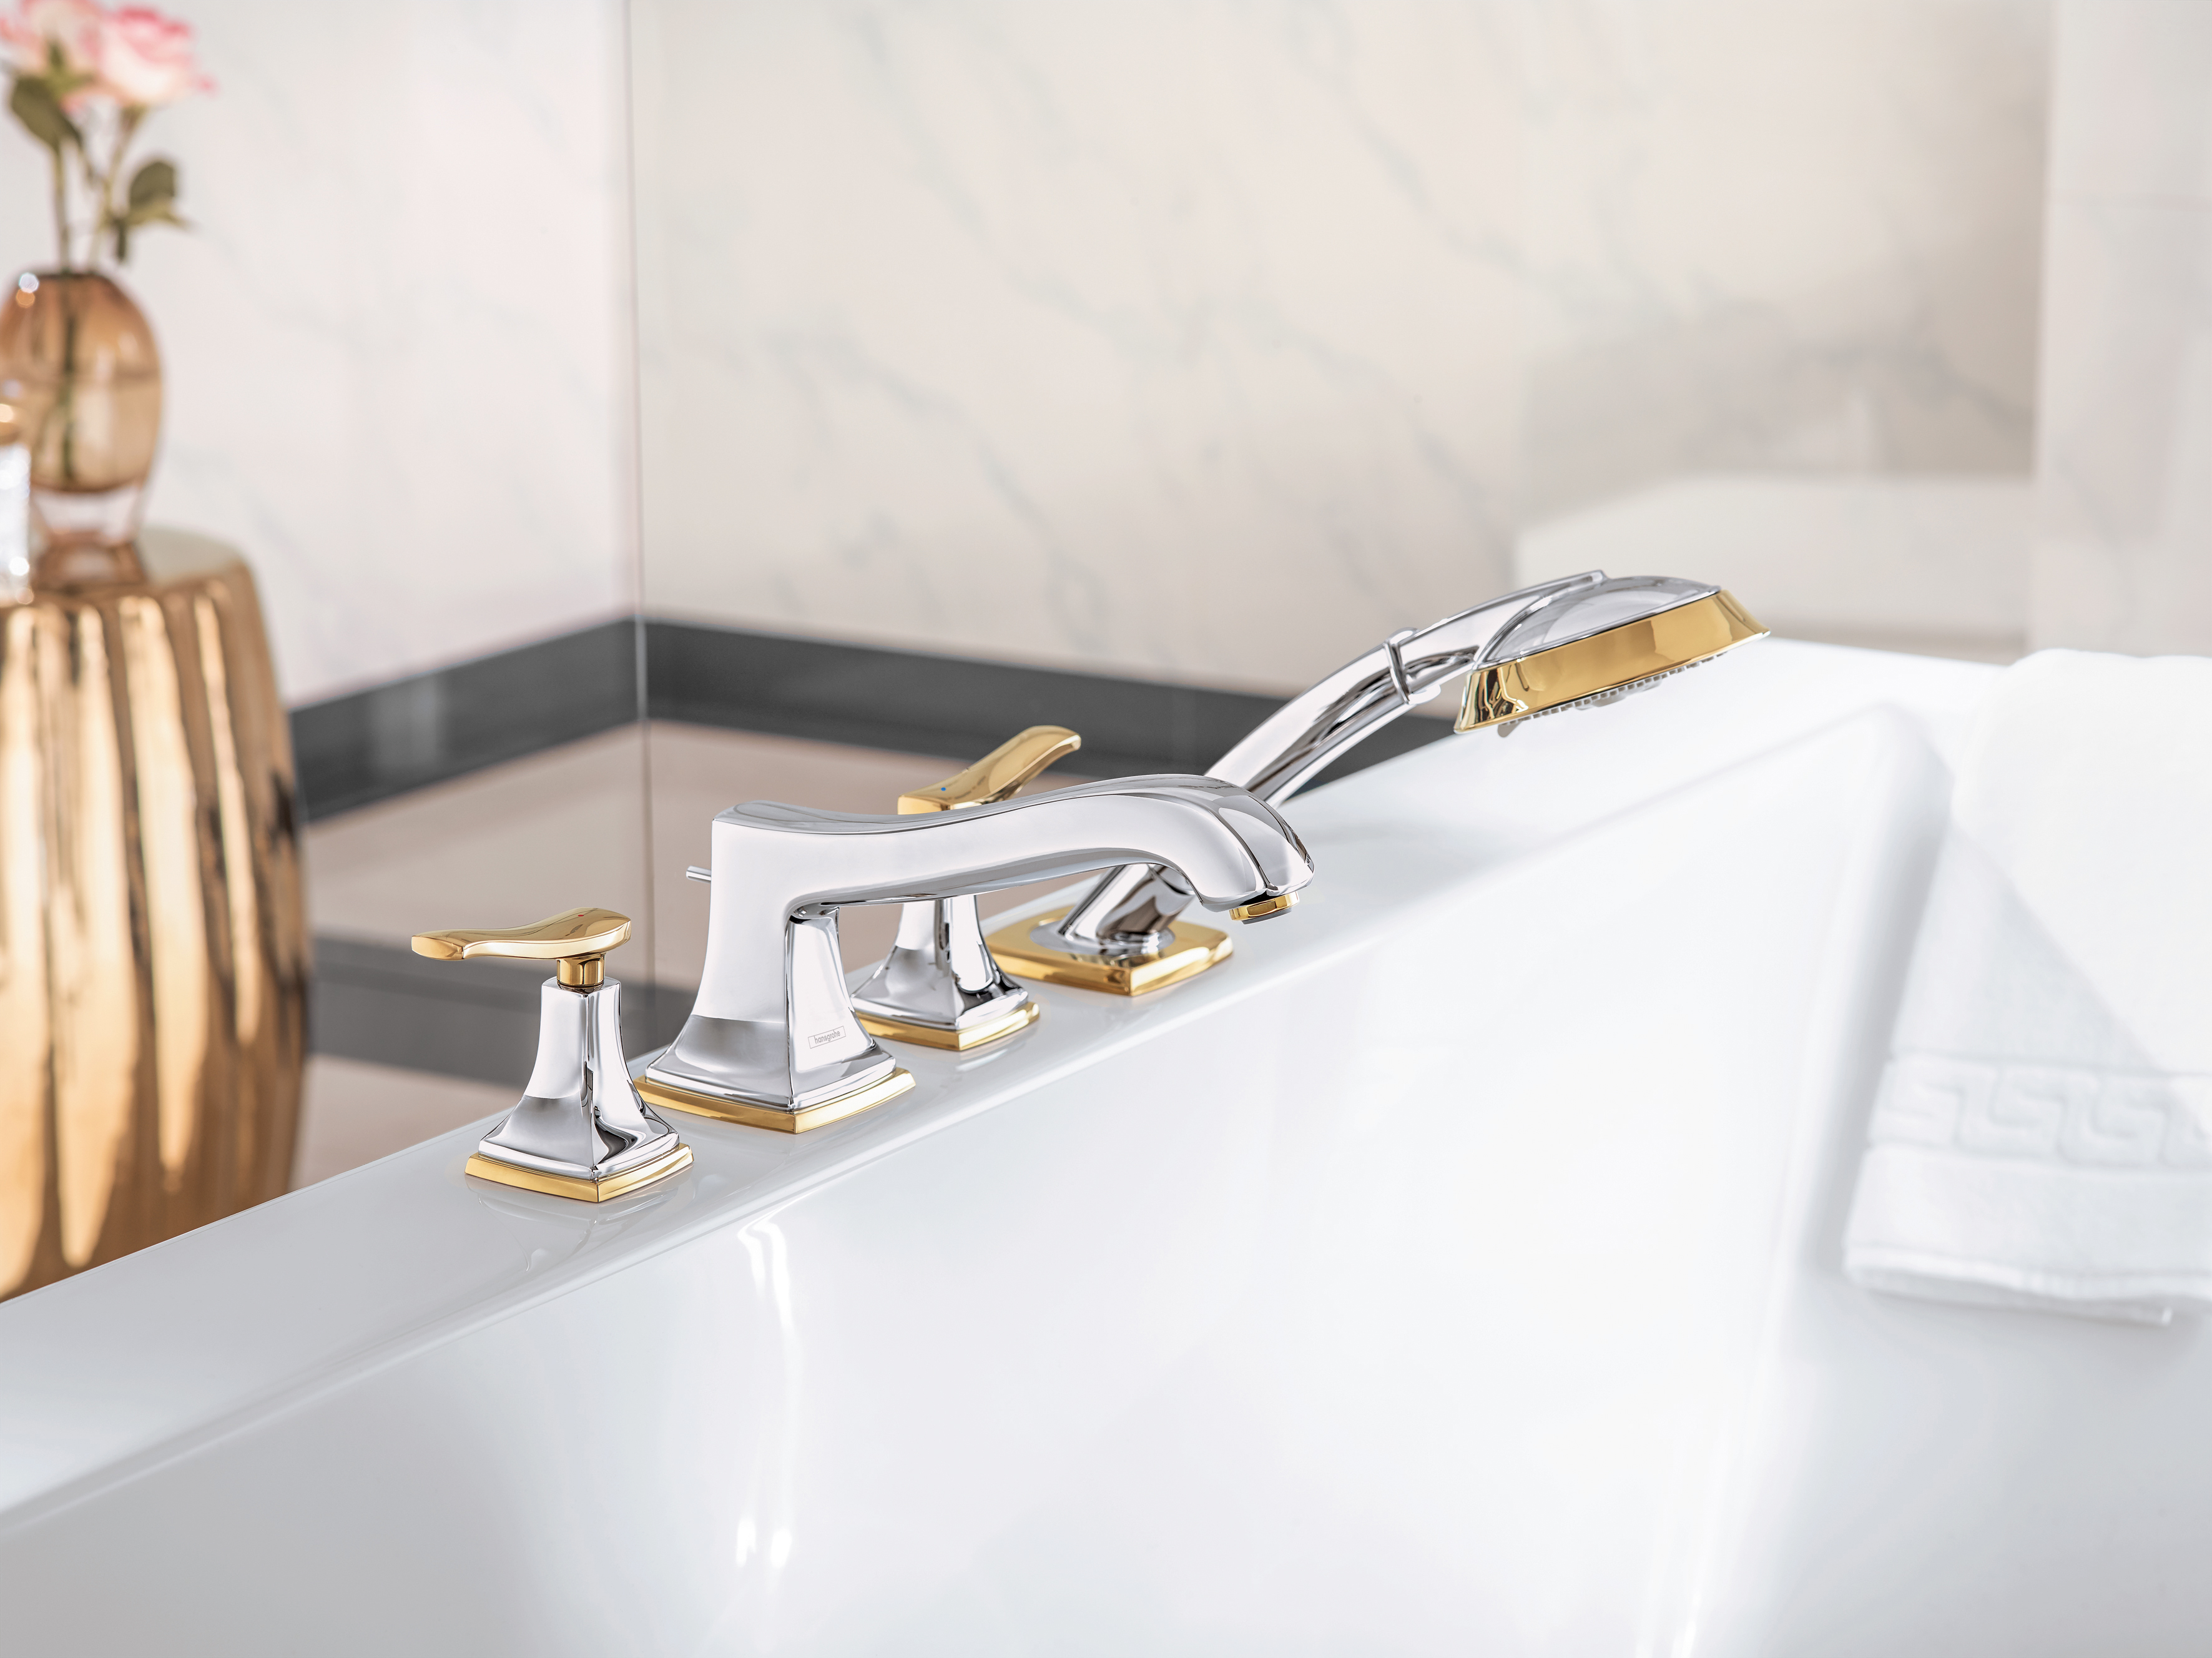 Metropol Classic 4-hole bath mixer lever by Hansgrohe | STYLEPARK